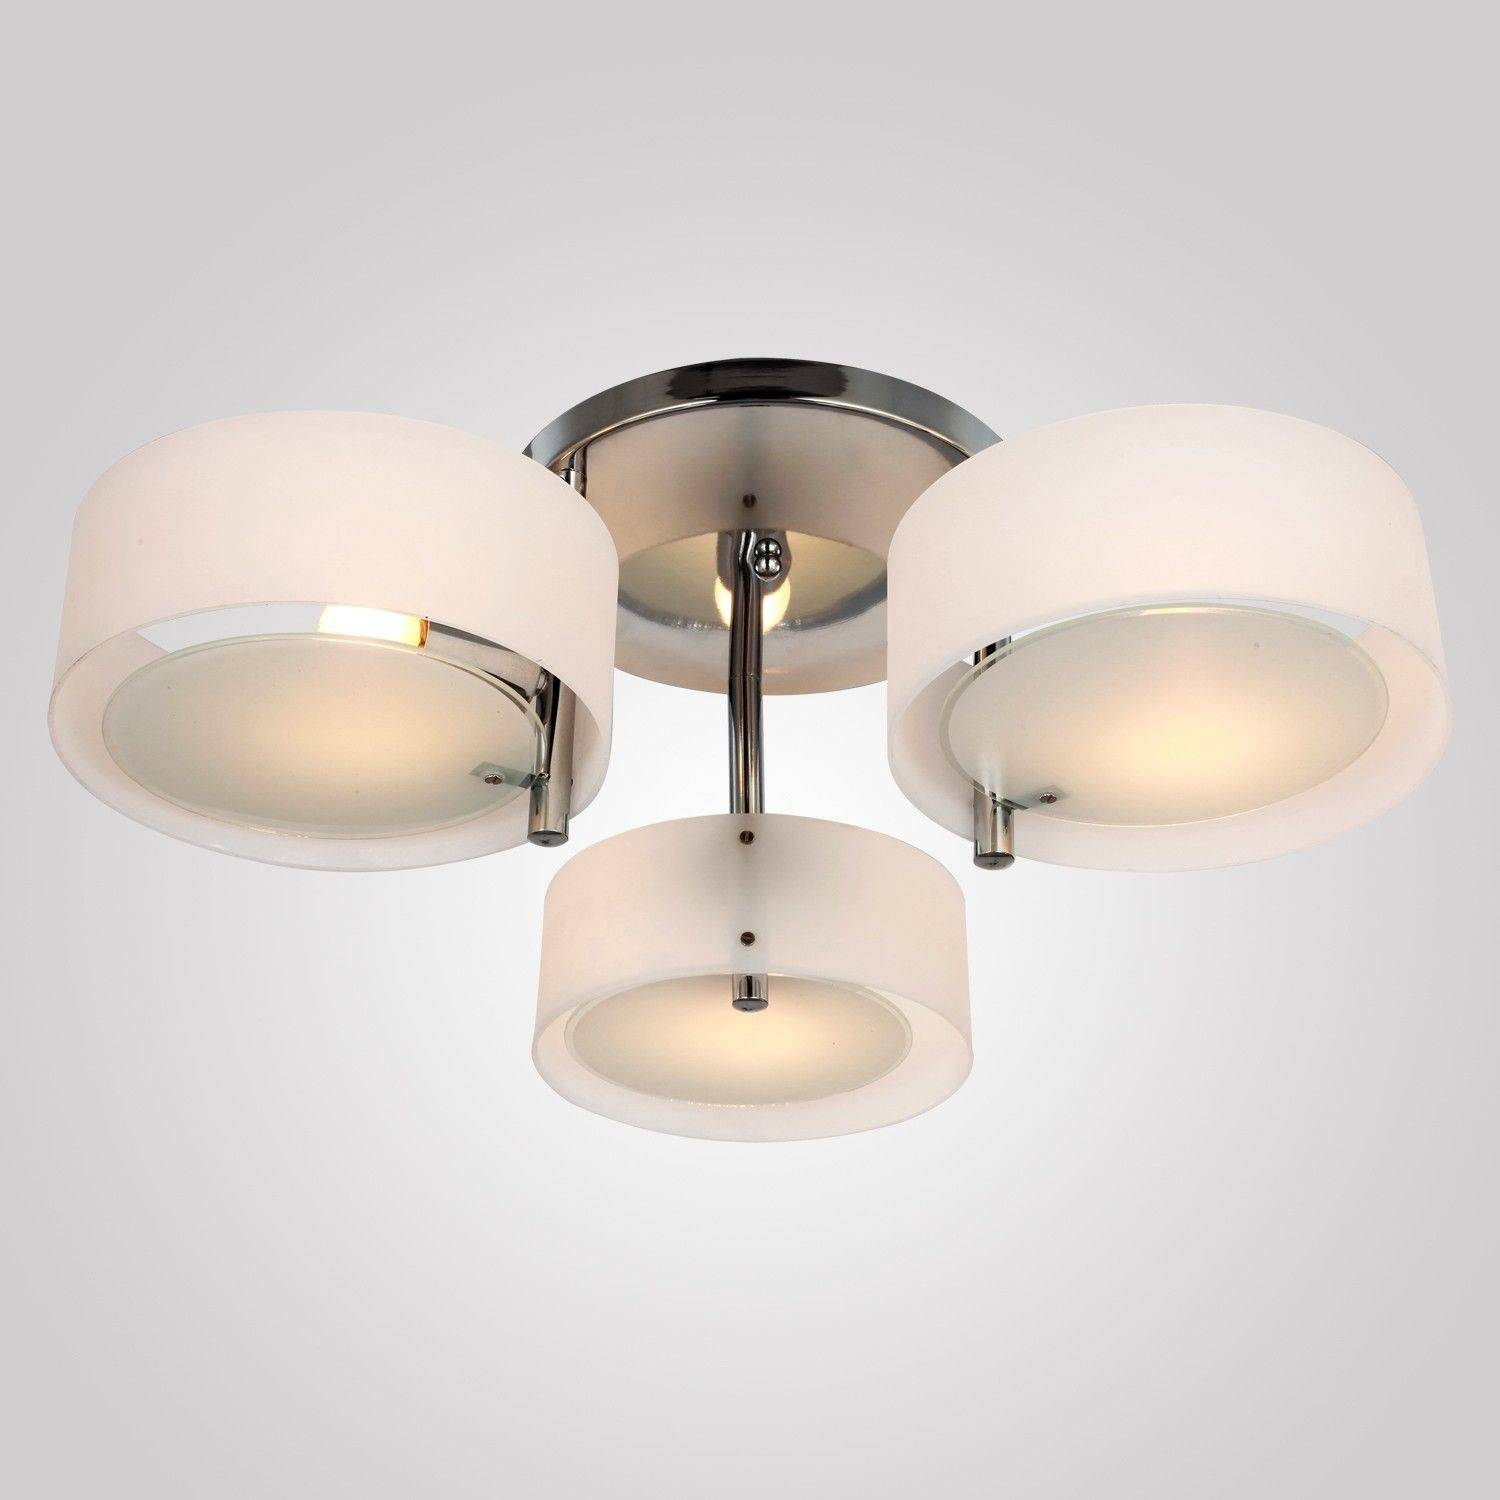 Clearance Pendant Lighting: The Best Clearance Pendant Lighting